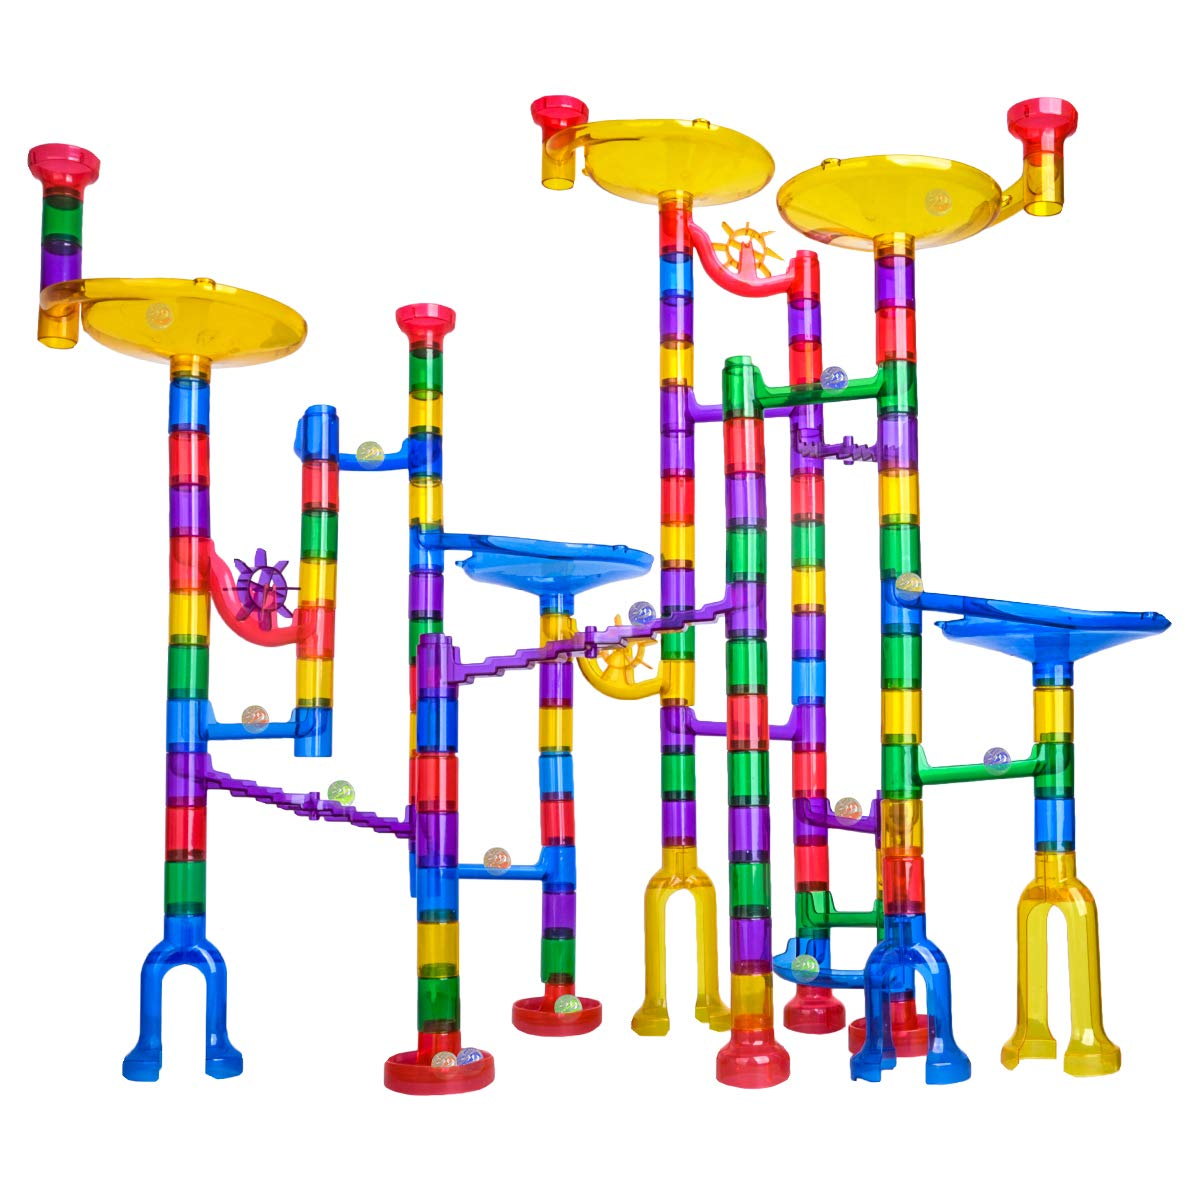 Meland Marble Run - 122Pcs Marble Maze Game Building Toy for Kids